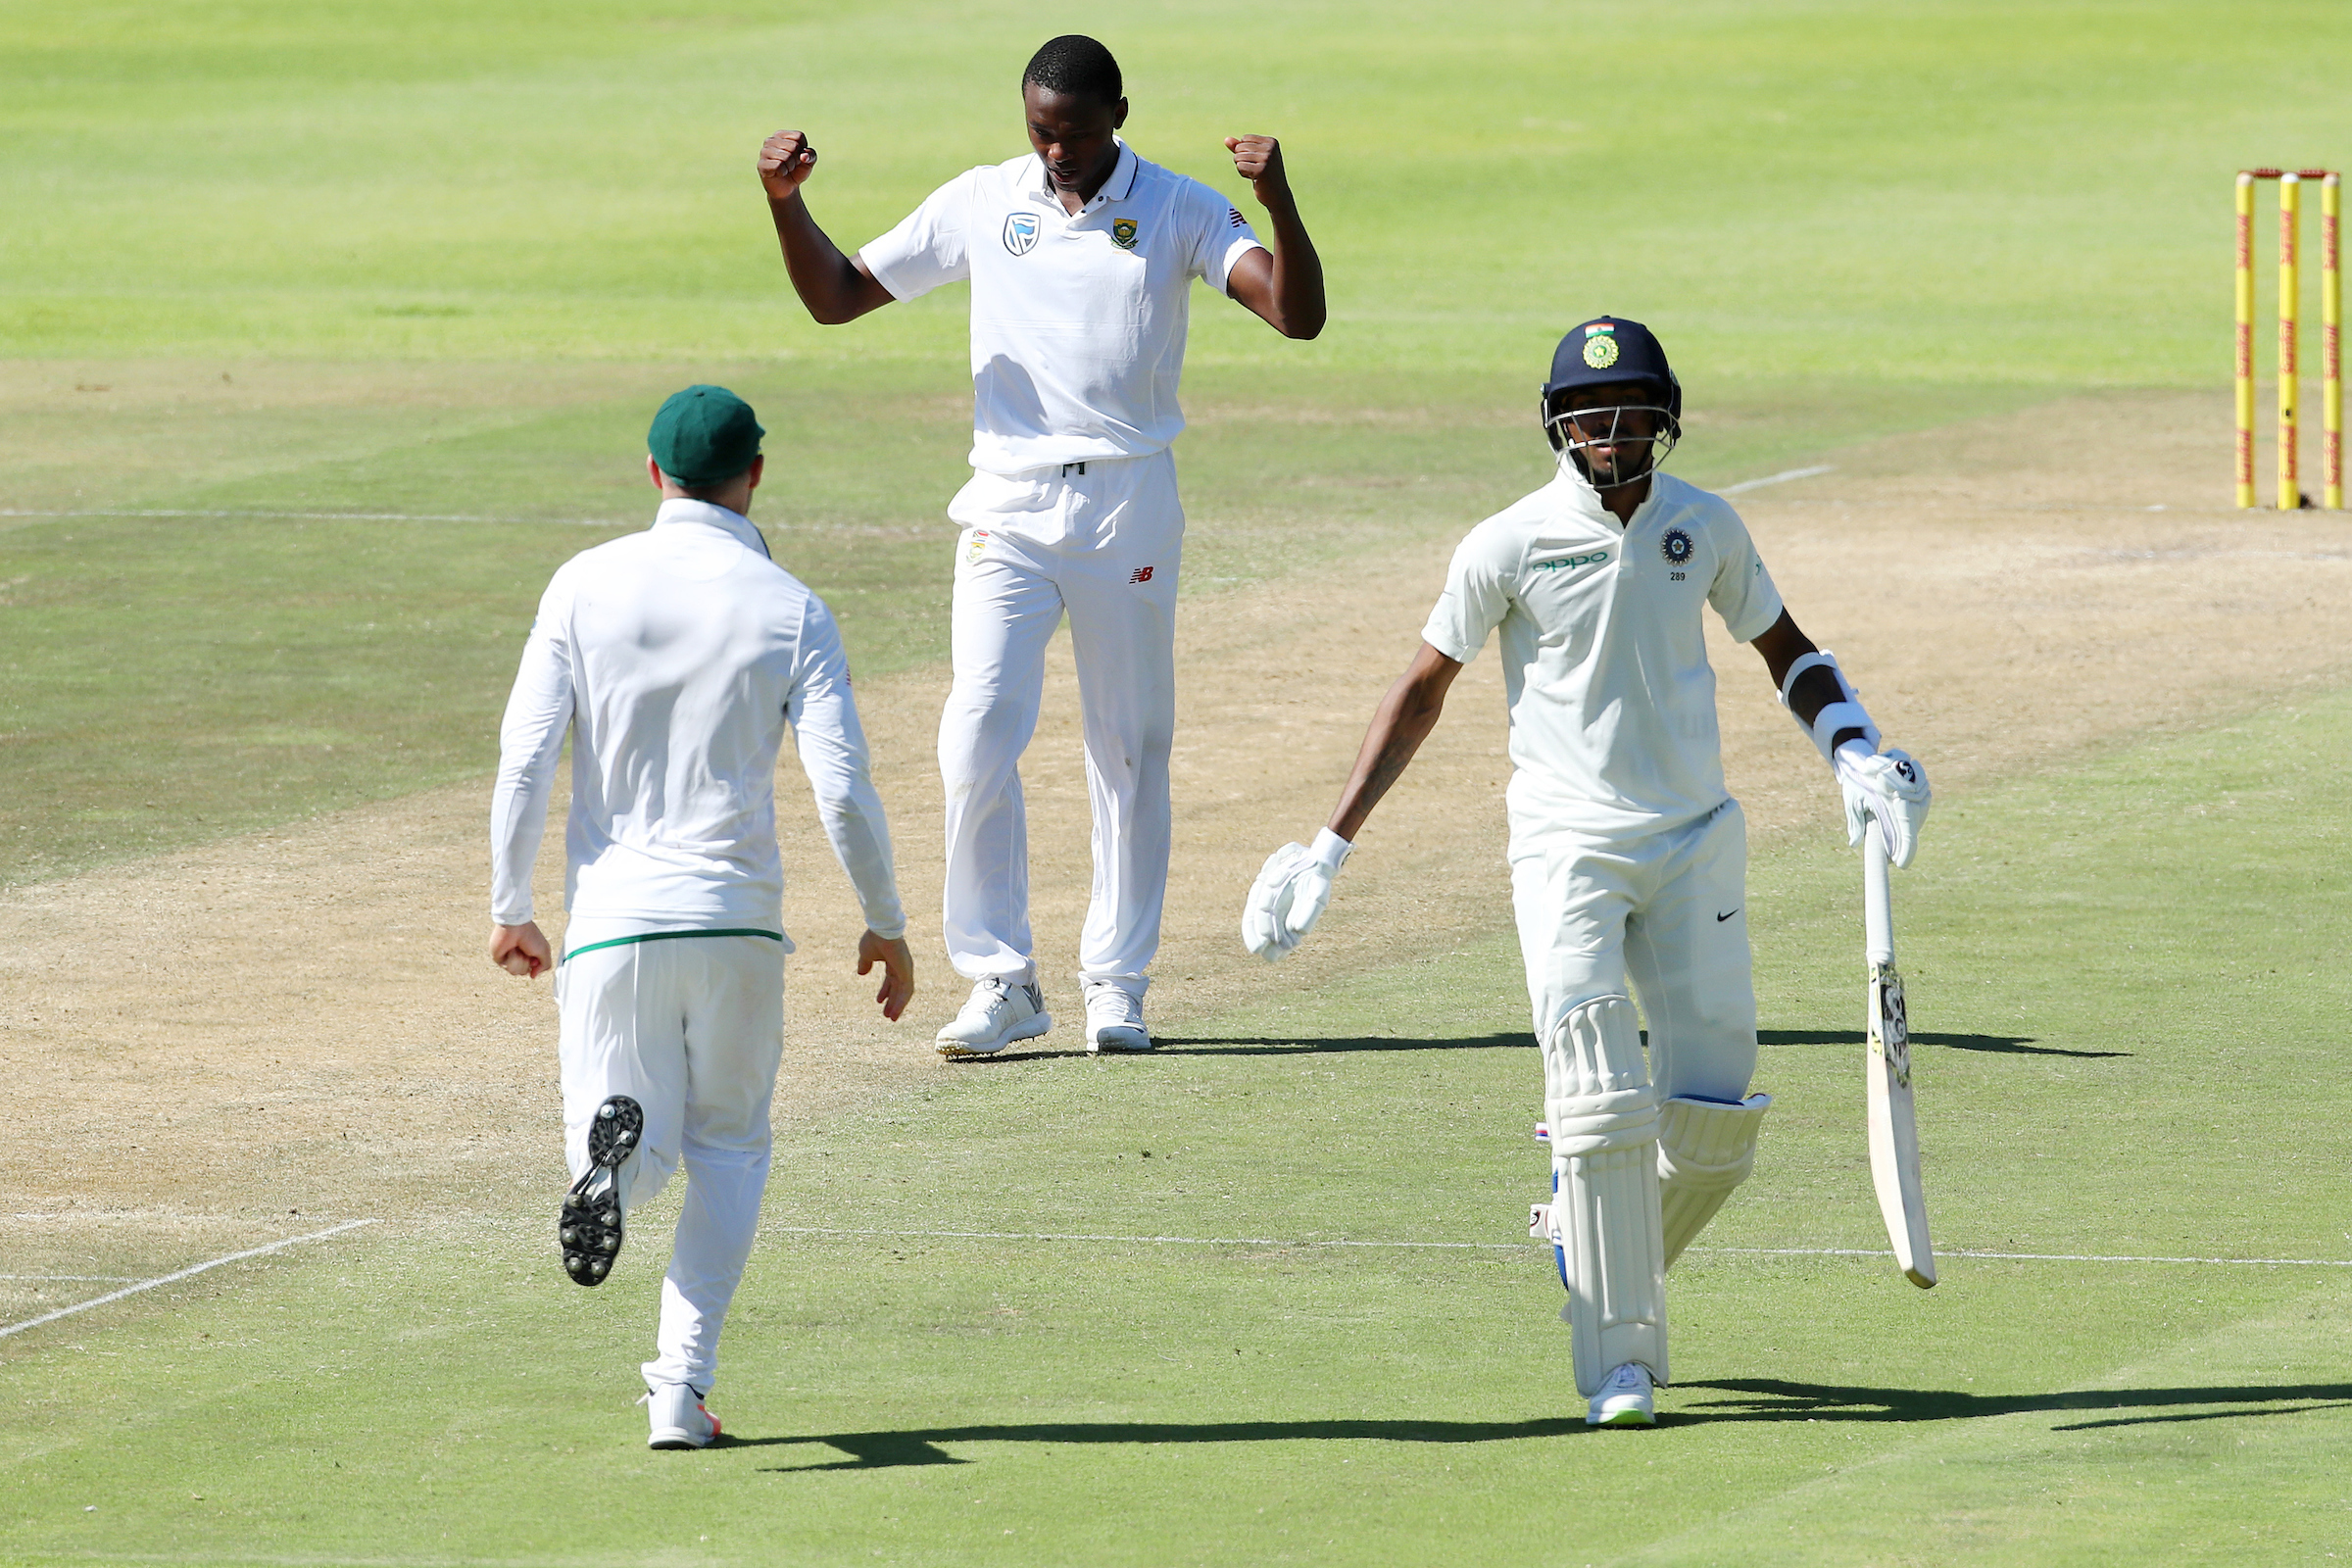 Lungi Ngidi cracks test squad nod